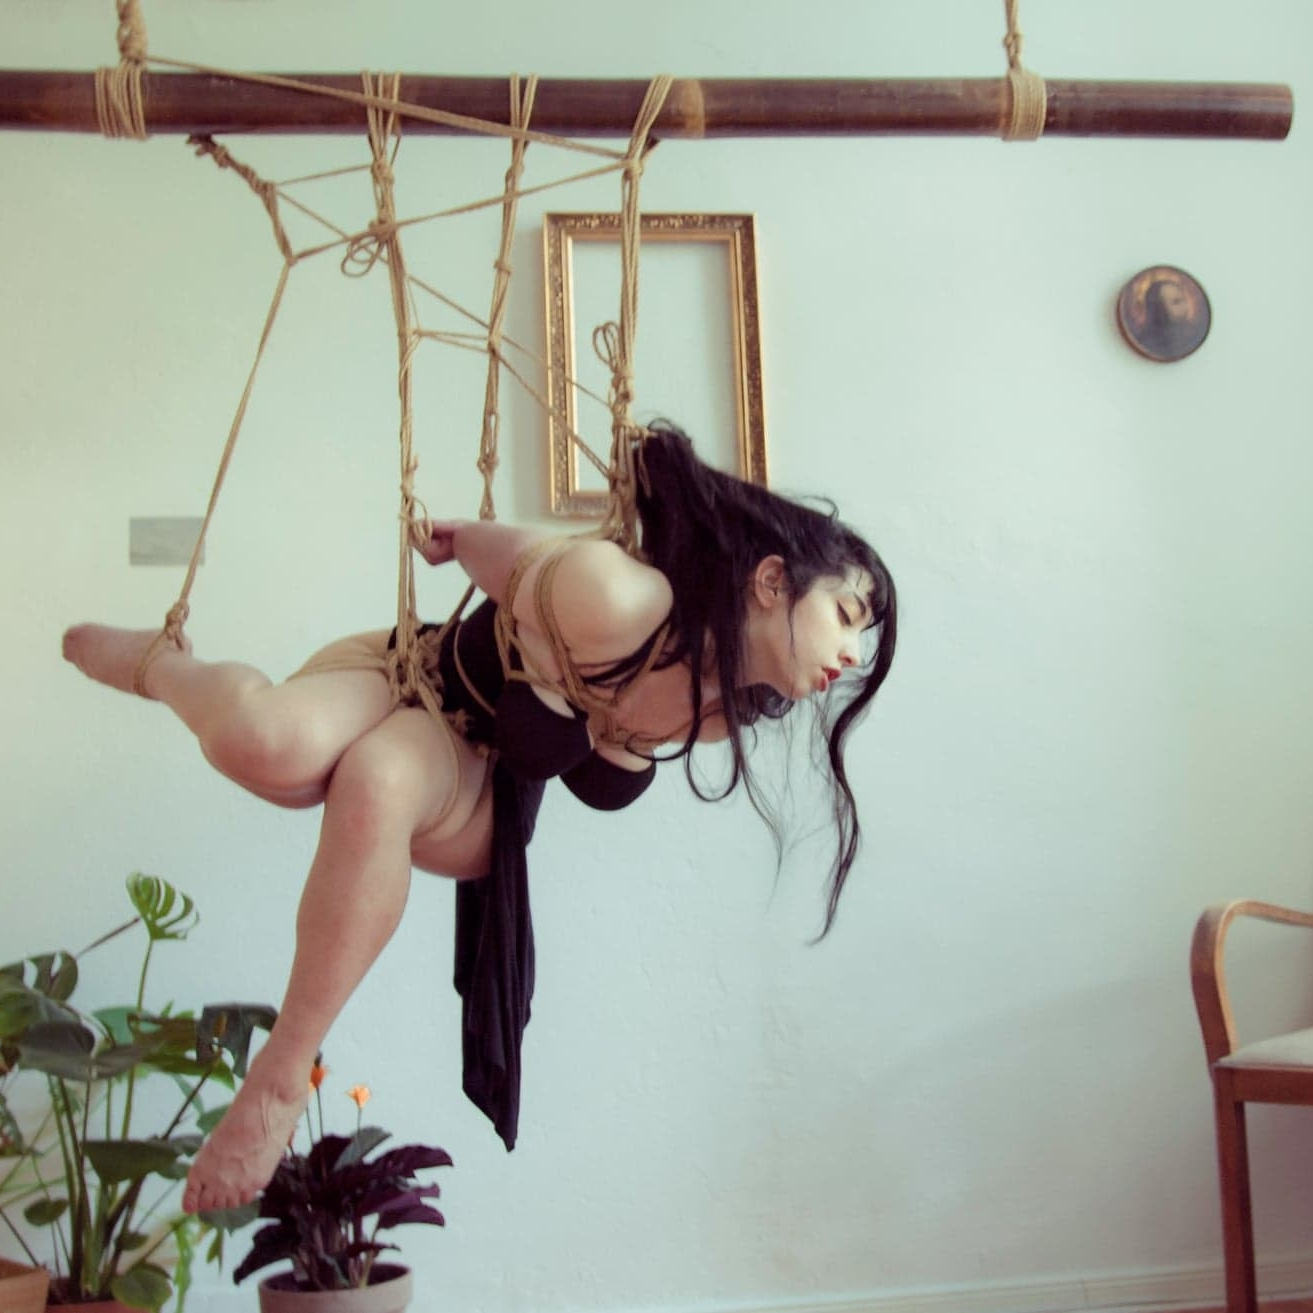 Tamandua - Berlin, GermanyWorkshops // Tuition // SessionsModelling // Performance // Artistic WorkPhotography // Lectures // Researchemail // fetlife // insta // facebookropework and photo: Tamanduamodelling: Bastet